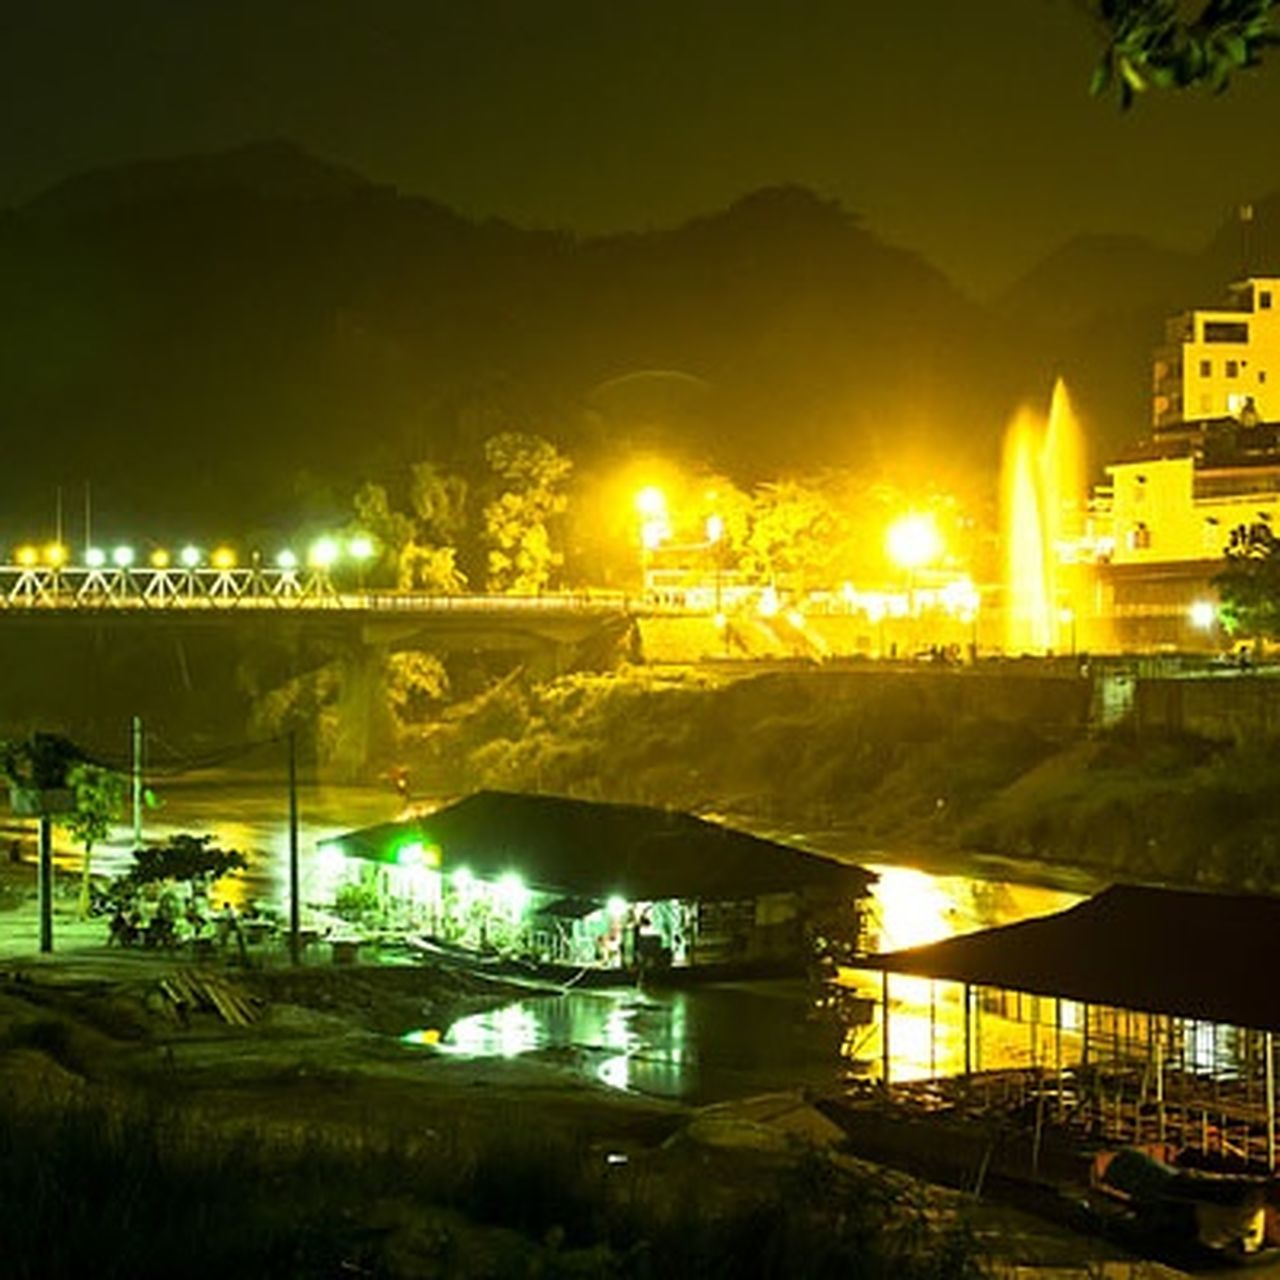 khung cảnh huyền ảo hà giang city Night Reflection Water Illuminated River Outdoors No People Nautical Vessel Scenics Sky Nature Tree City Architecture First Eyeem Photo Live For The Story The Great Outdoors - 2017 EyeEm Awards